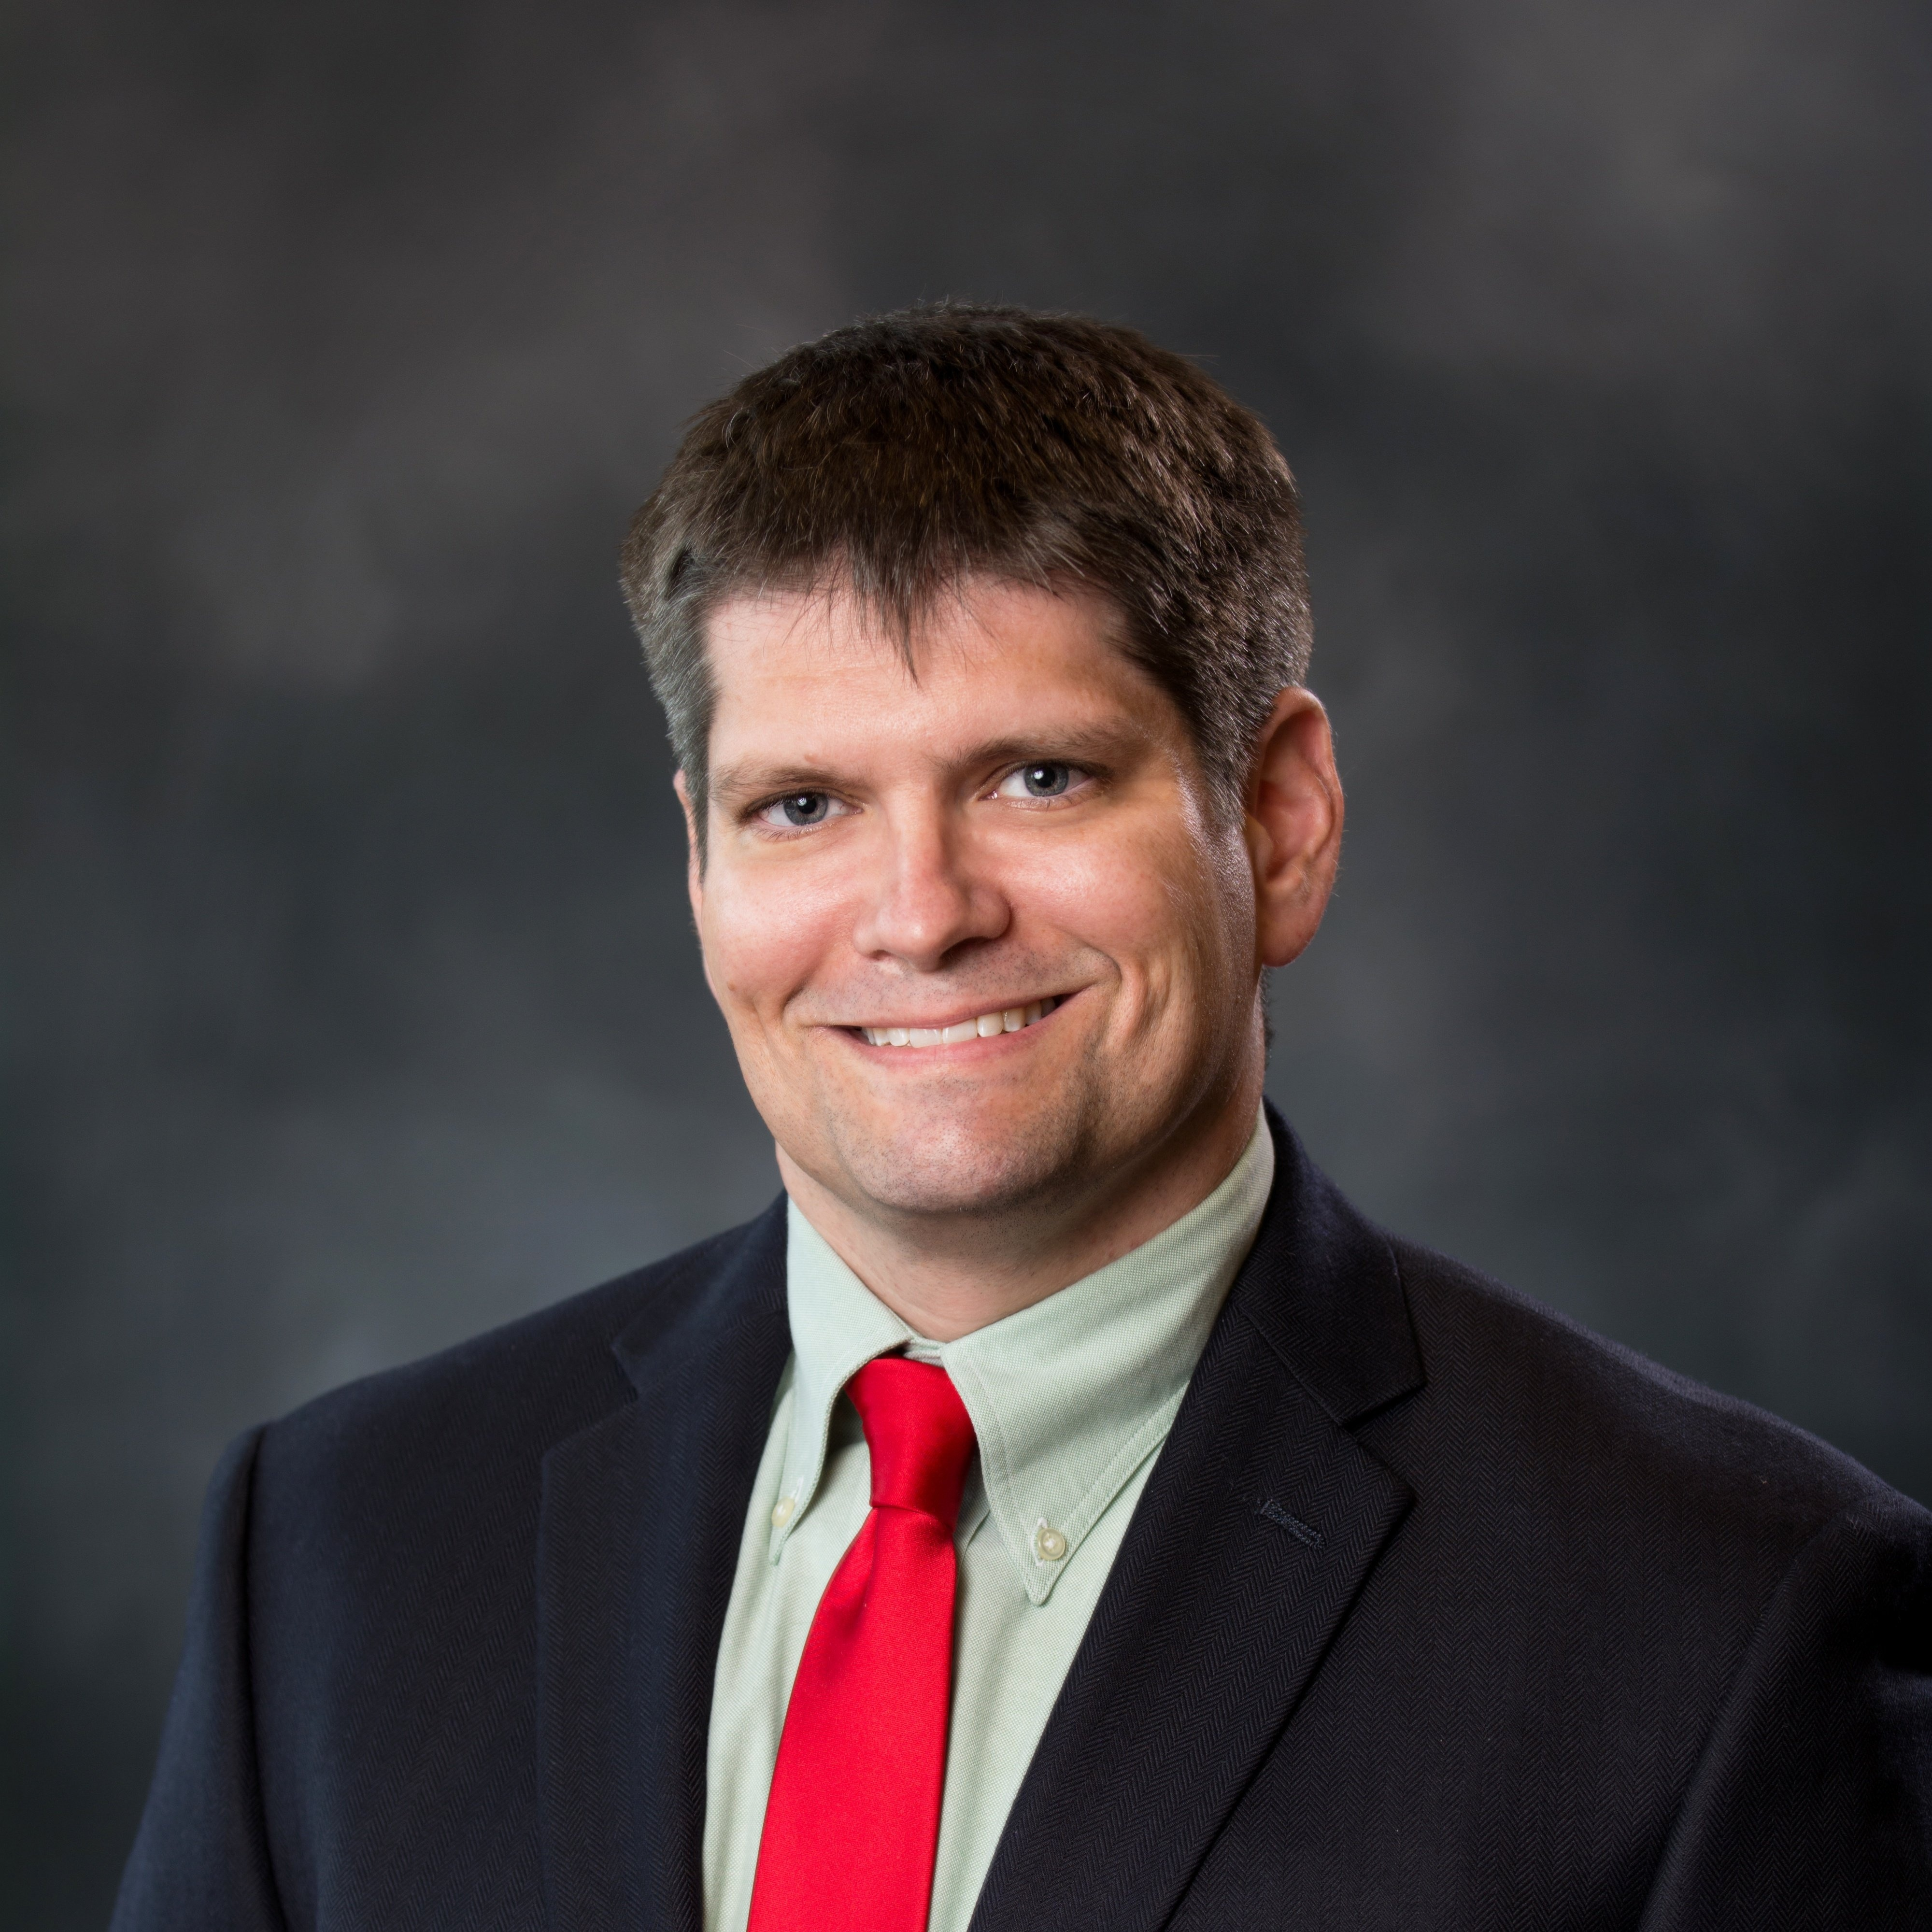 Thomas Gaines, MD at the Cardiovascular Institute of the South Westbank Location